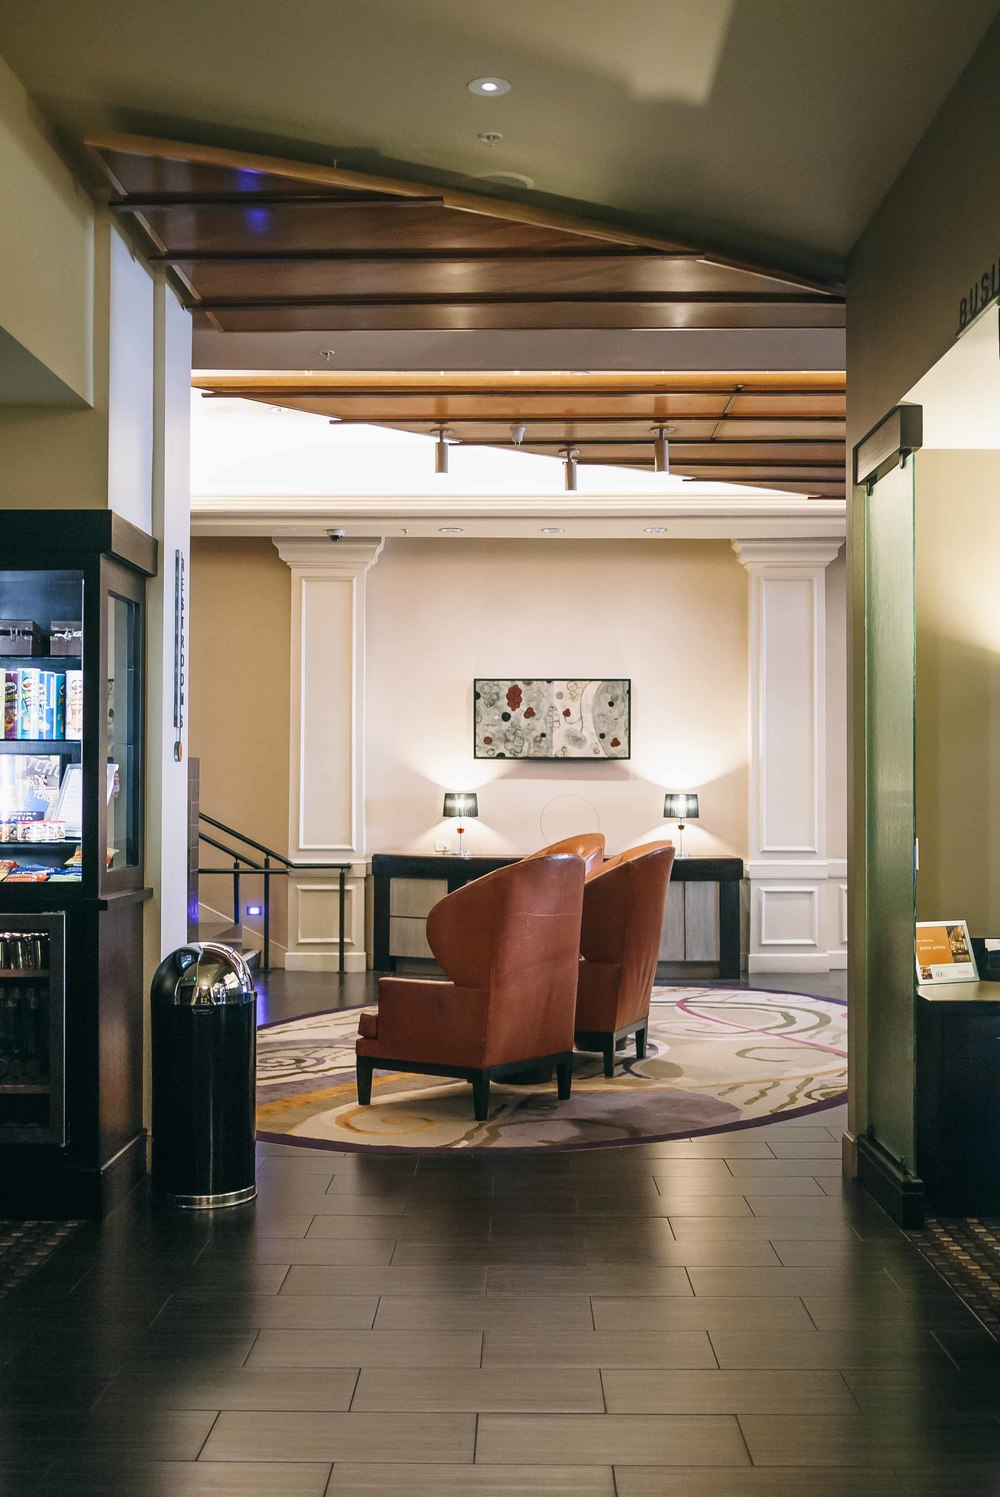 The expansive lobby area with high-beamed ceilings is such delightful sight as we came and go through the hotel. It also has a fully-stocked fridge with snacks + libations.